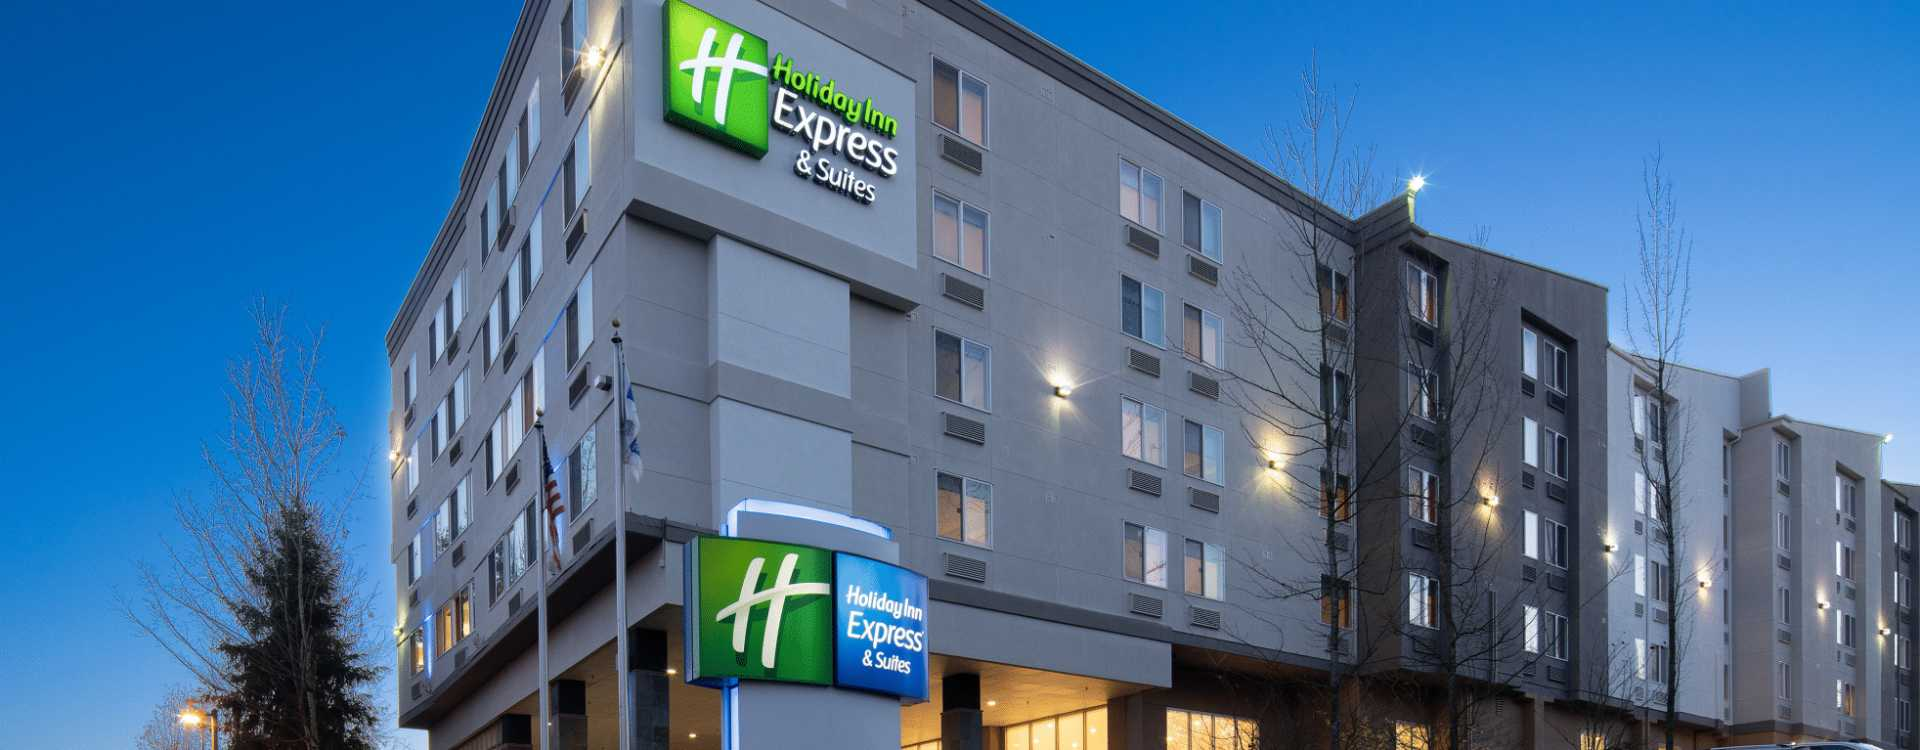 Exterior view of Holiday Inn Express & Suites in SeaTac